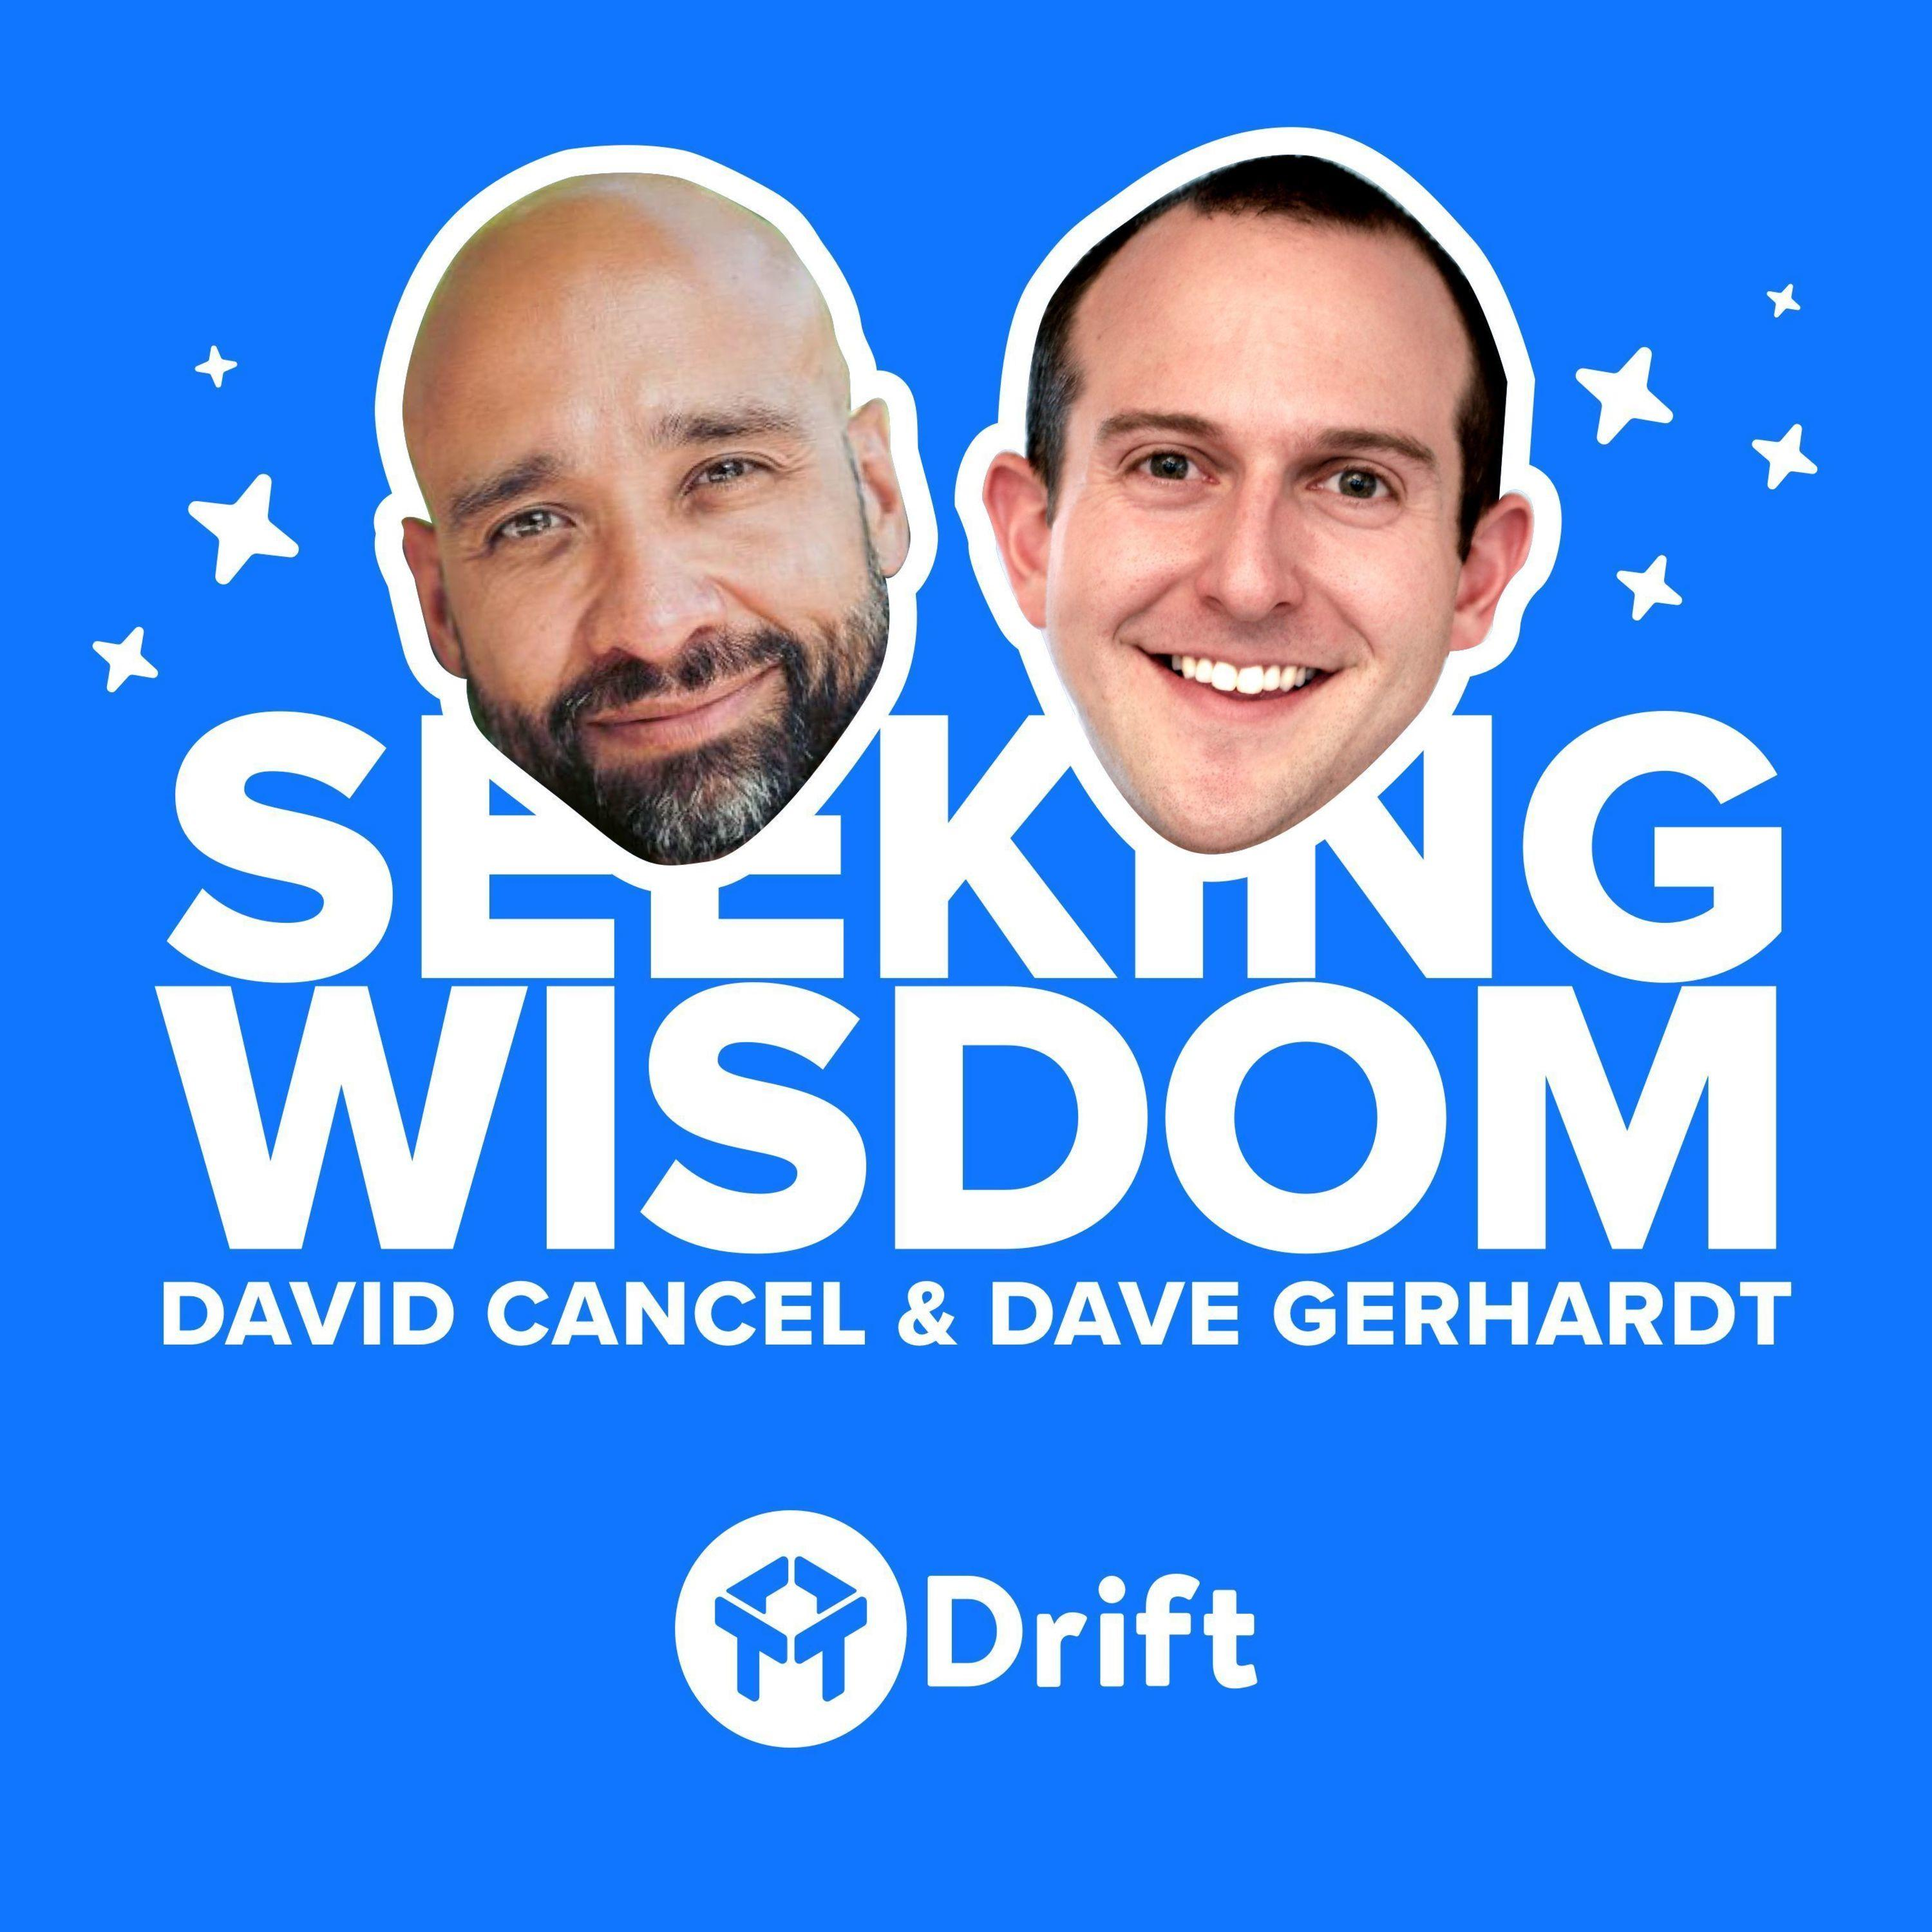 A Very Special Message From DC & DG (We're Bringing You More Seeking Wisdom)